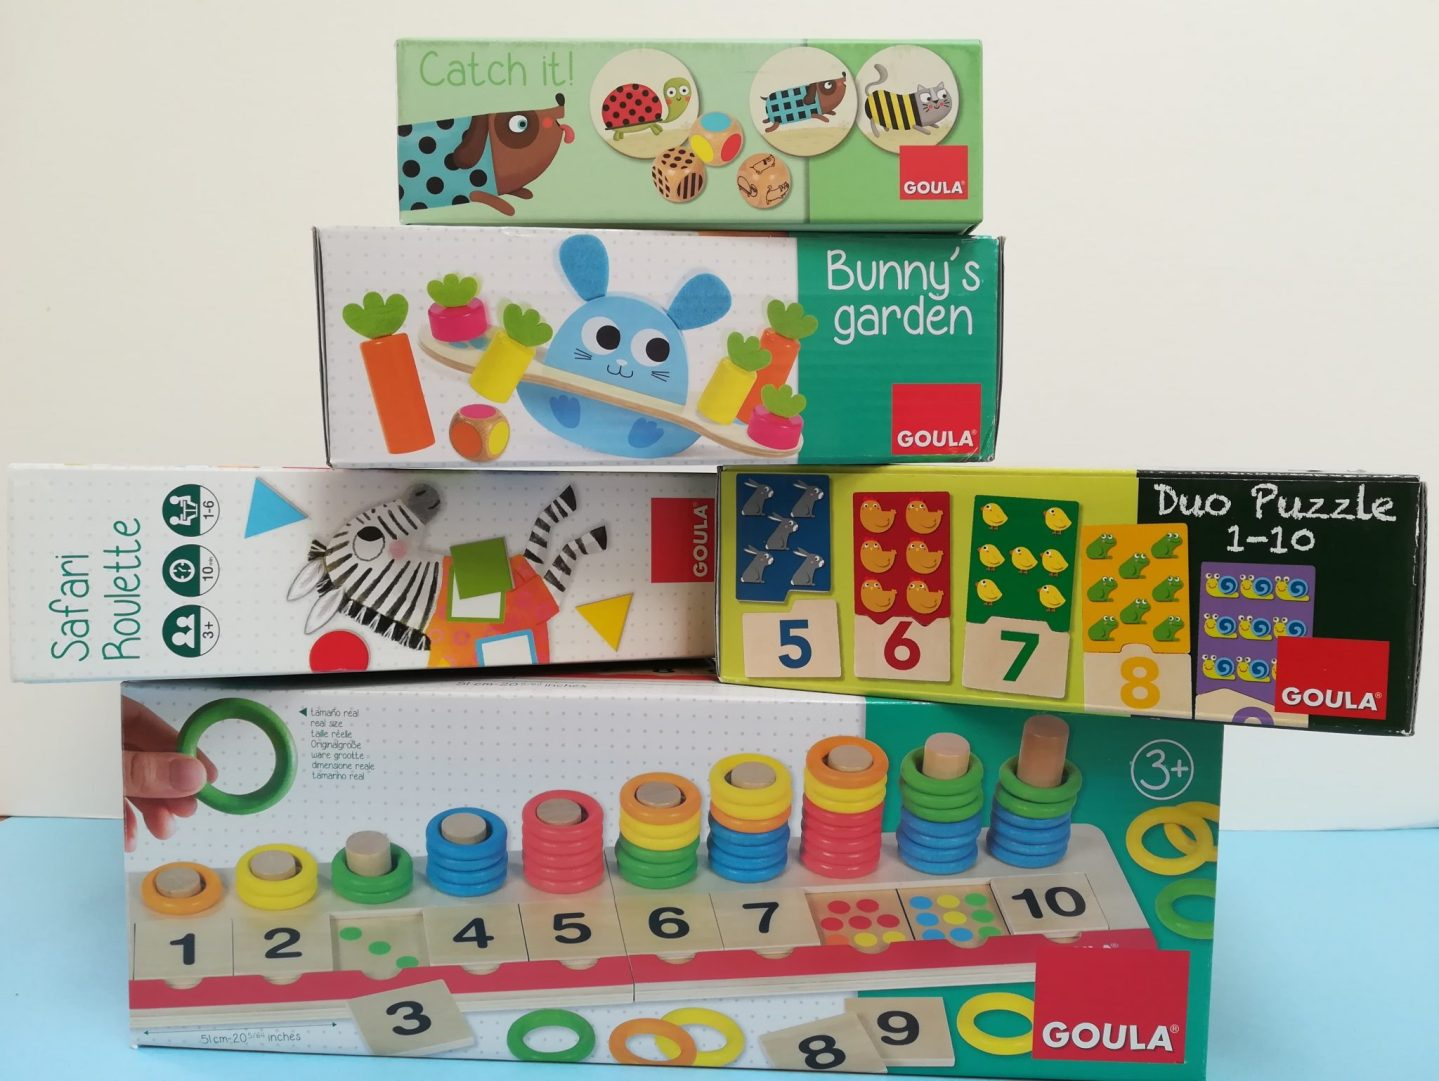 Review of Goula Range from Jumbo Games.